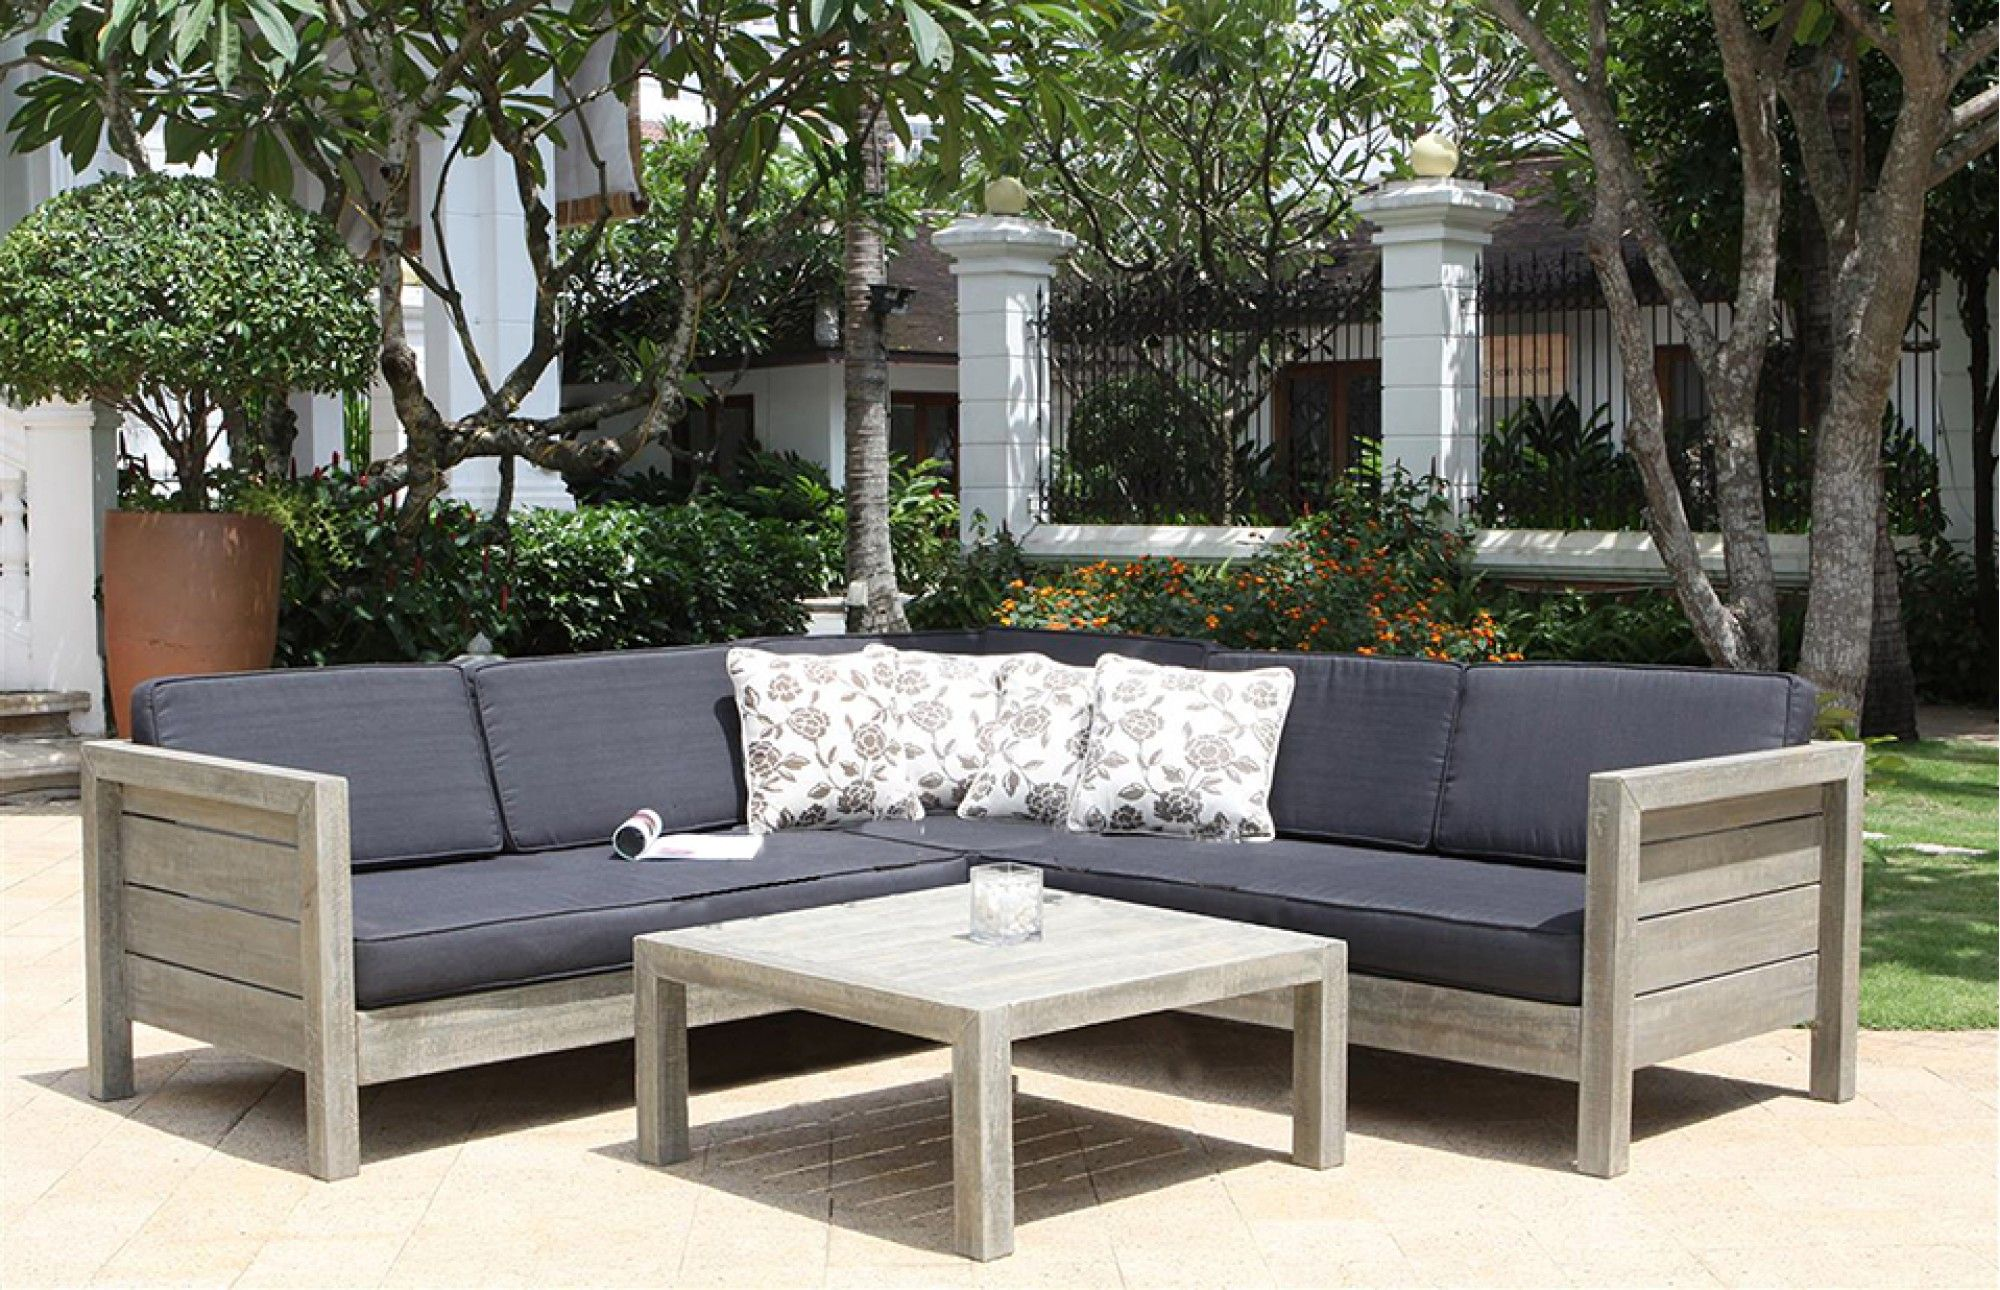 Designer Outdoor Furniture lodge wooden garden sofa set | garden sofa set, garden sofa and